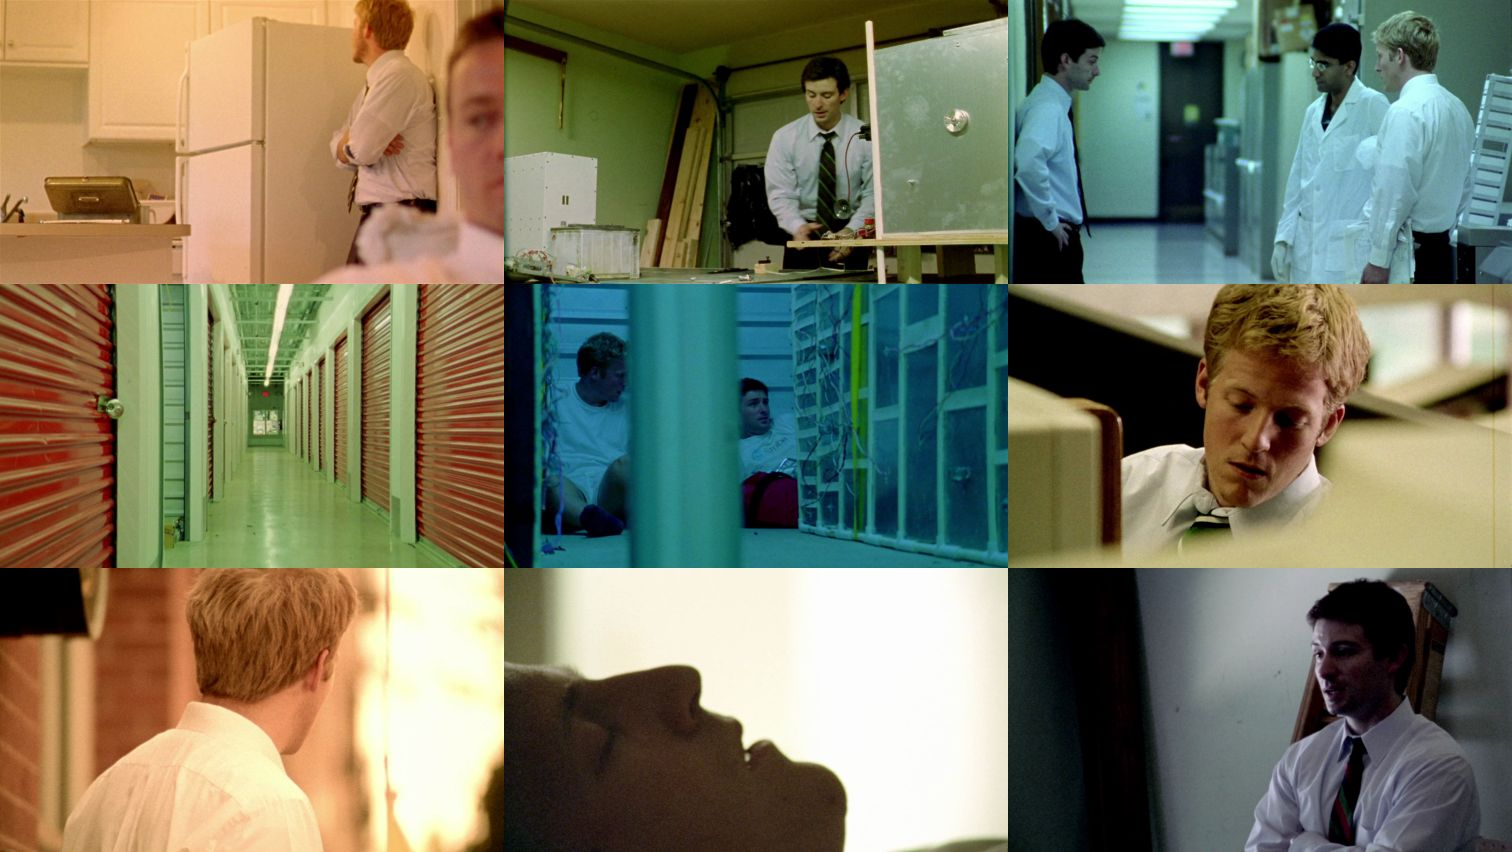 悠悠MP4_MP4电影下载_初始者/初学者 Primer.2004.720p.BluRay.x264-USURY 5.40GB